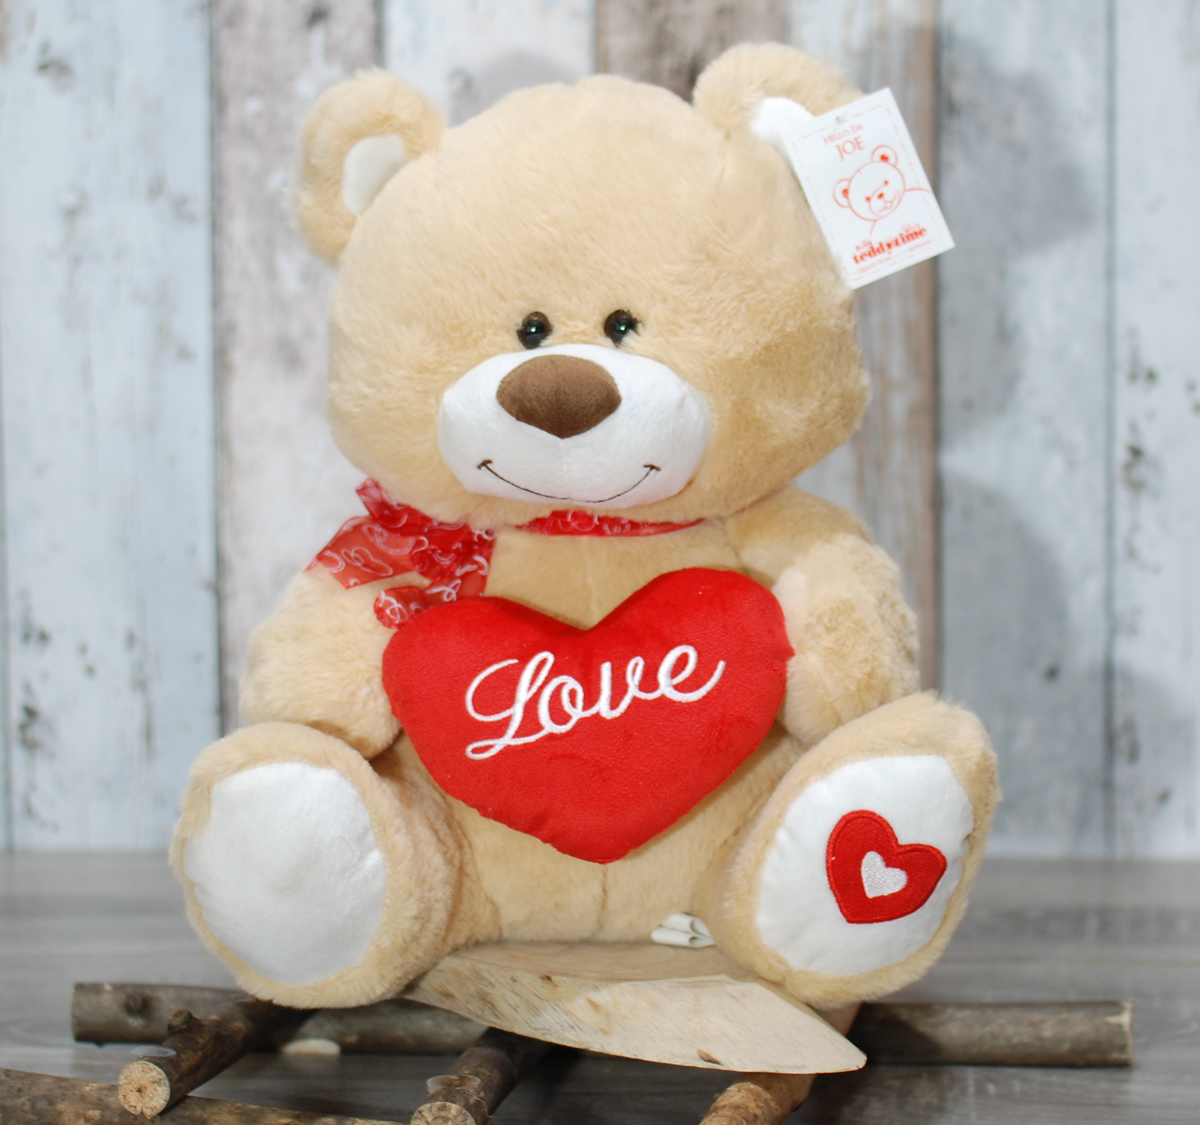 Love teddy bear large – 36cm